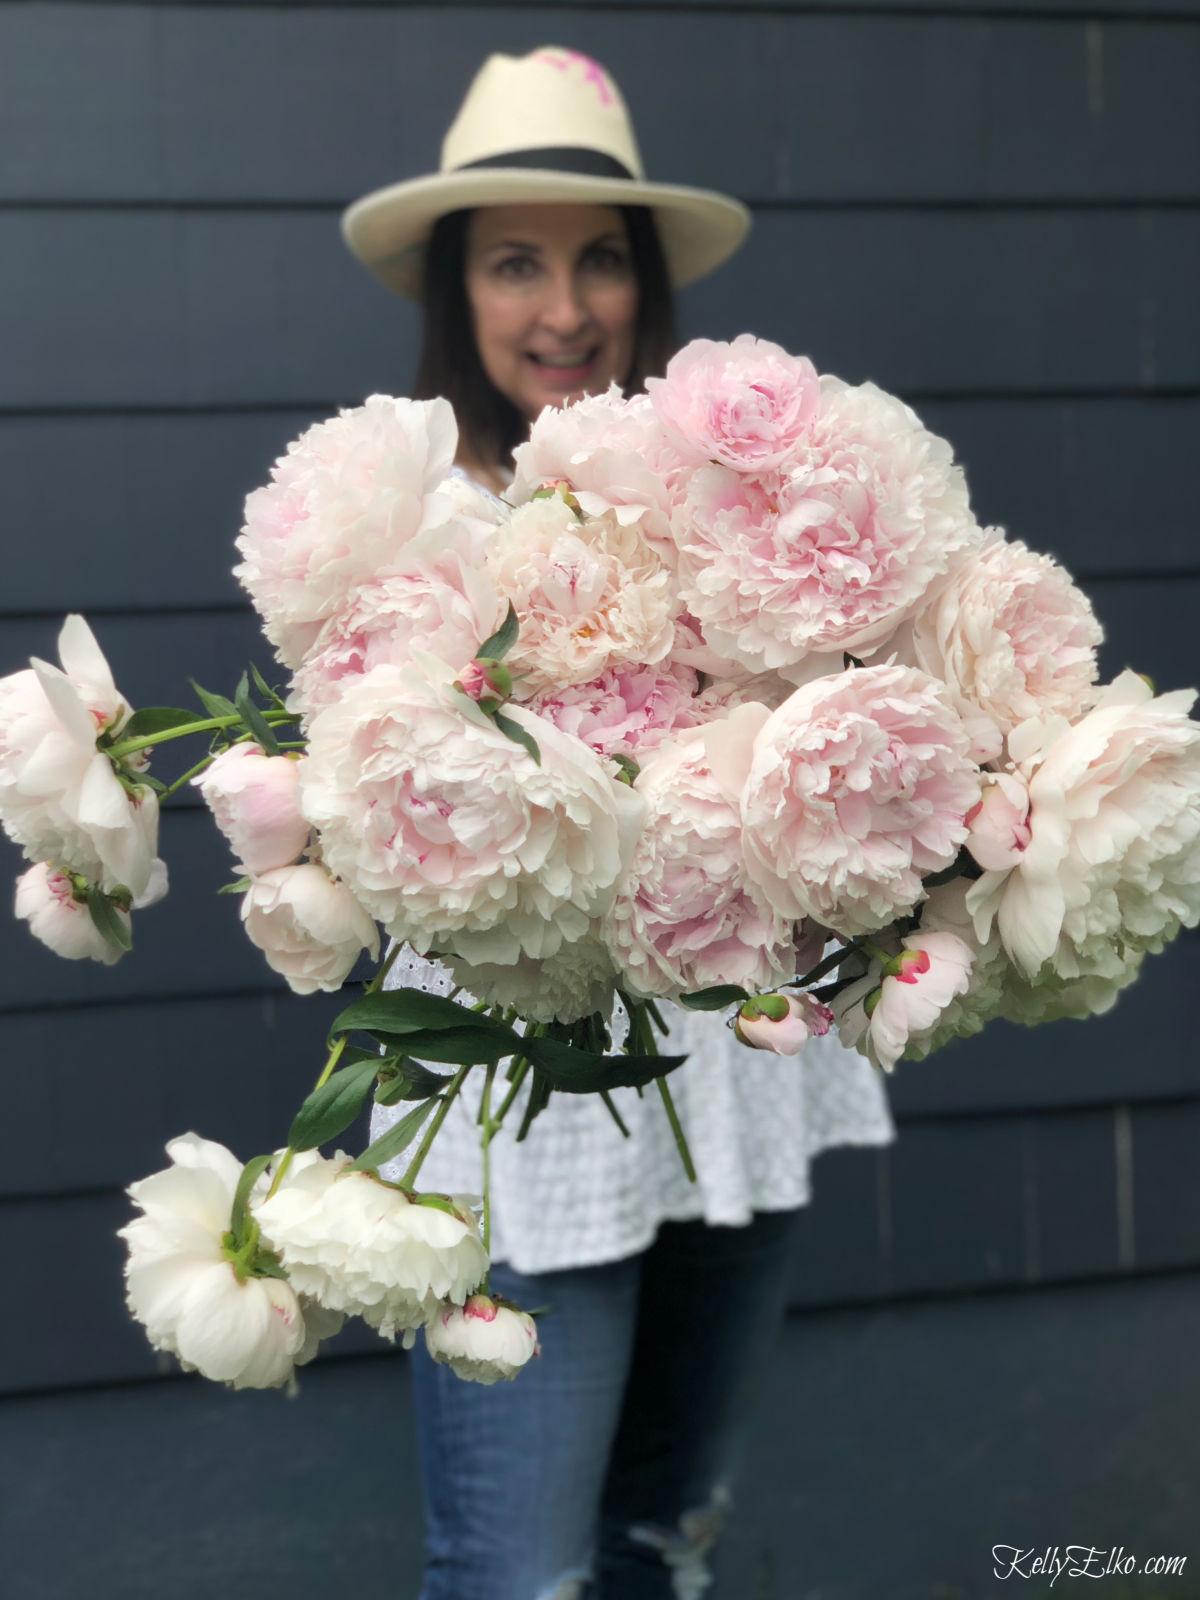 Peonies! Learn how to grow them, make them last longer, arrange them, and some unique fun facts about this spring flower kellyelko.com #peonies #peony #perennials #gardeners #gardeningtips